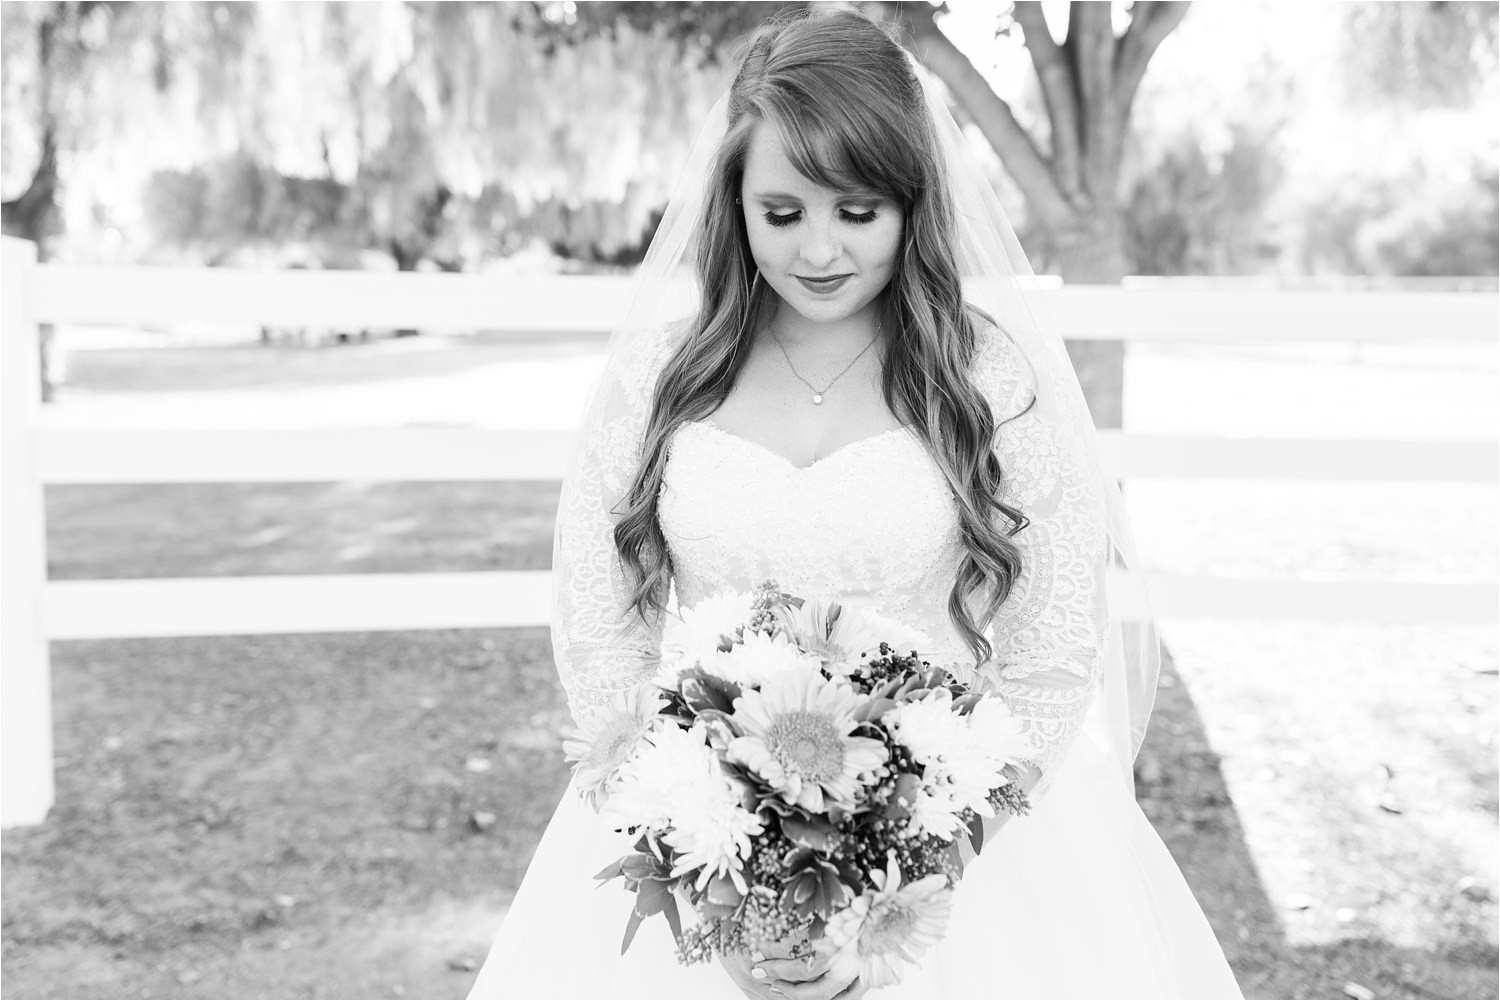 Bride Photos in Chino Hills - Chino Hills Wedding Photographer - https://brittneyhannonphotography.com